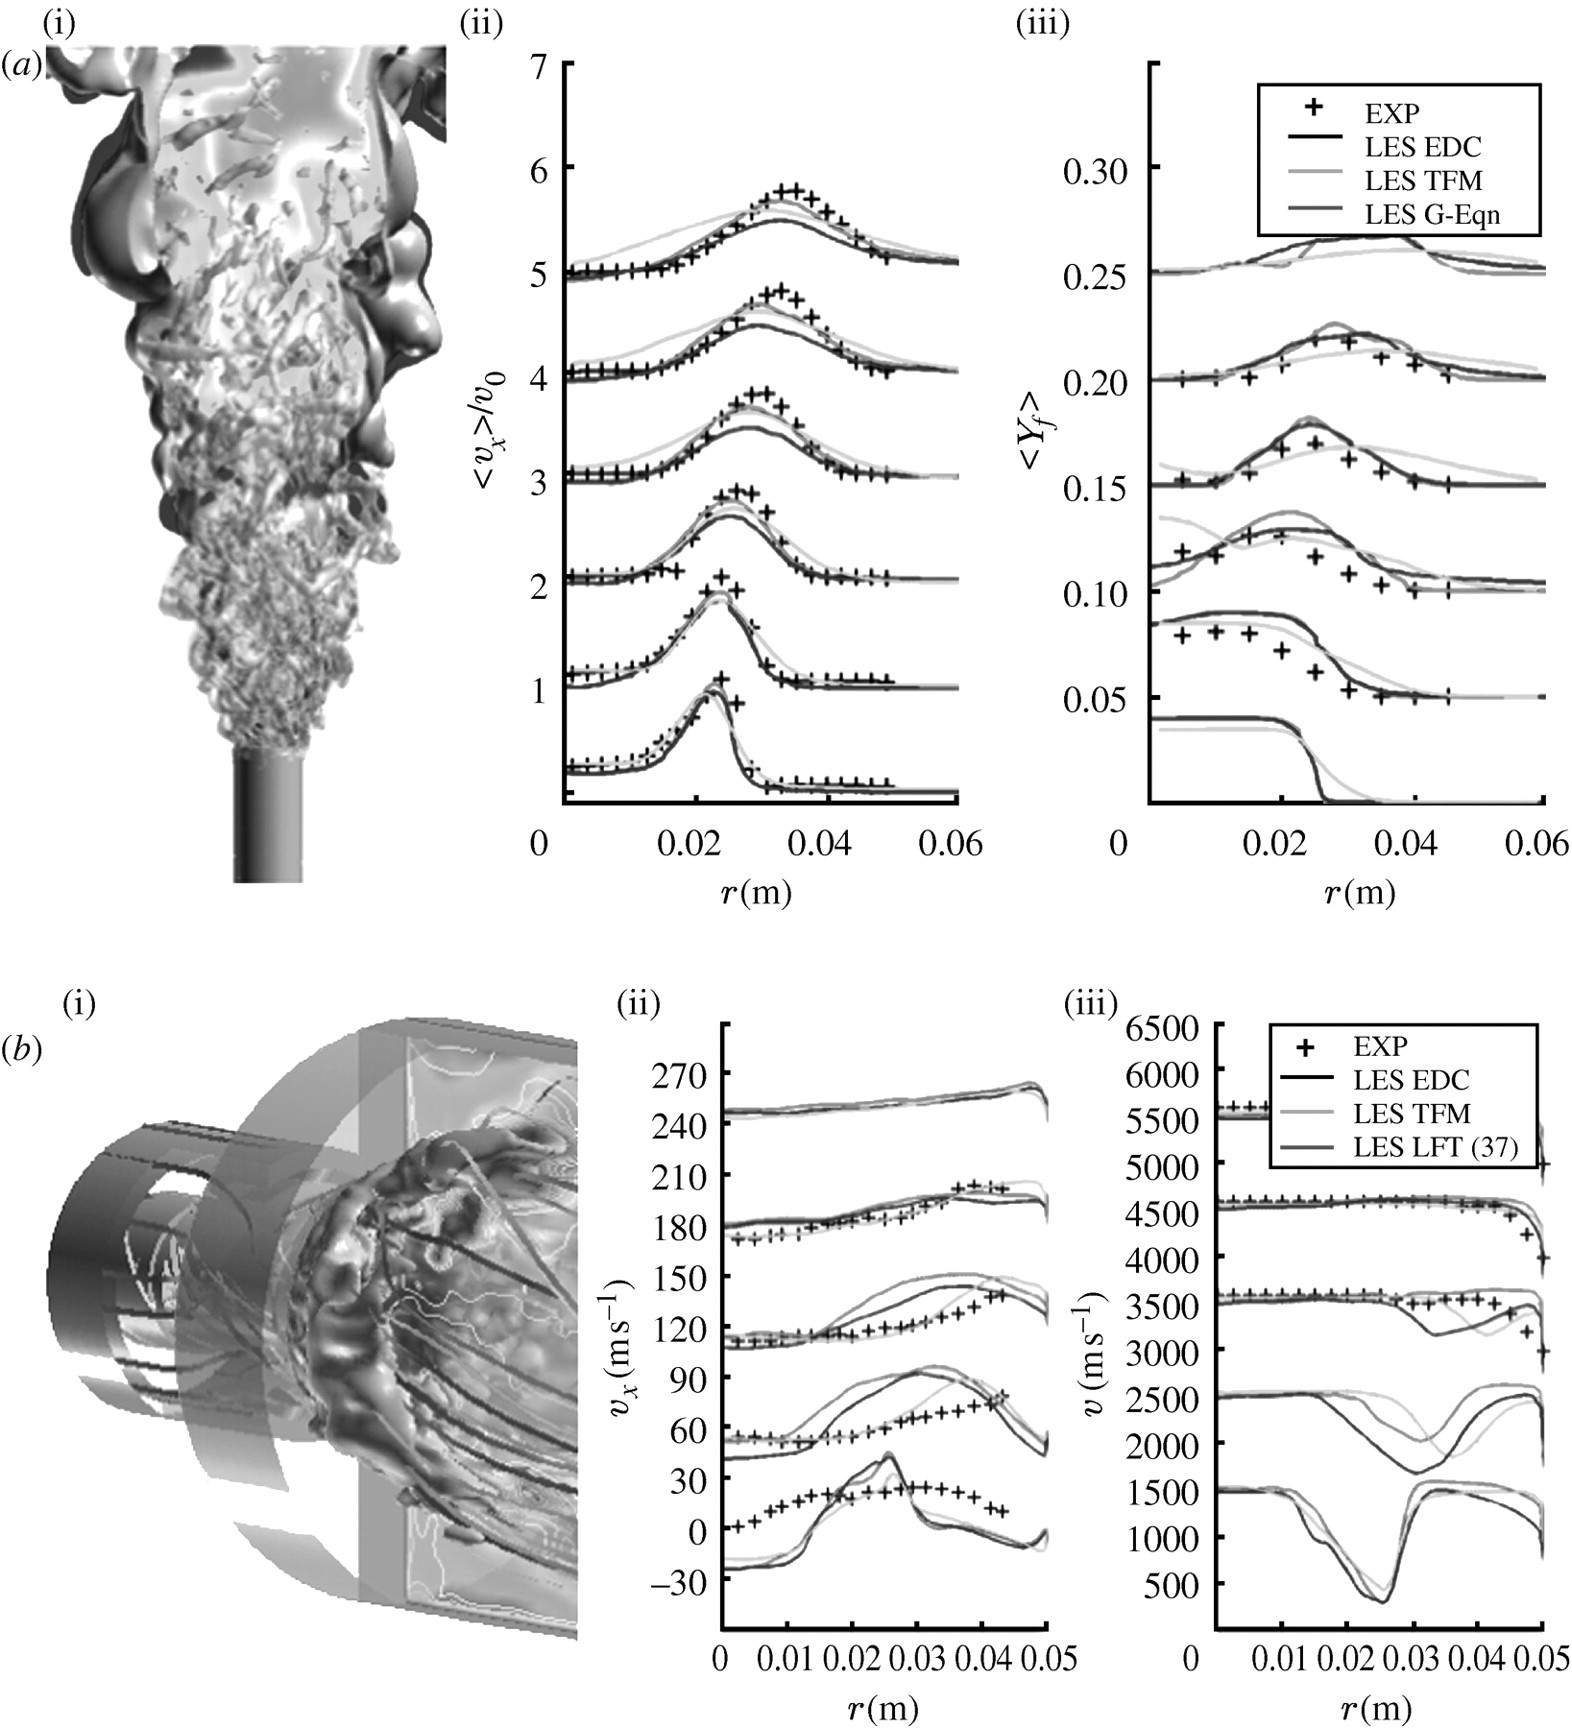 Large eddy simulation modelling of combustion for propulsion